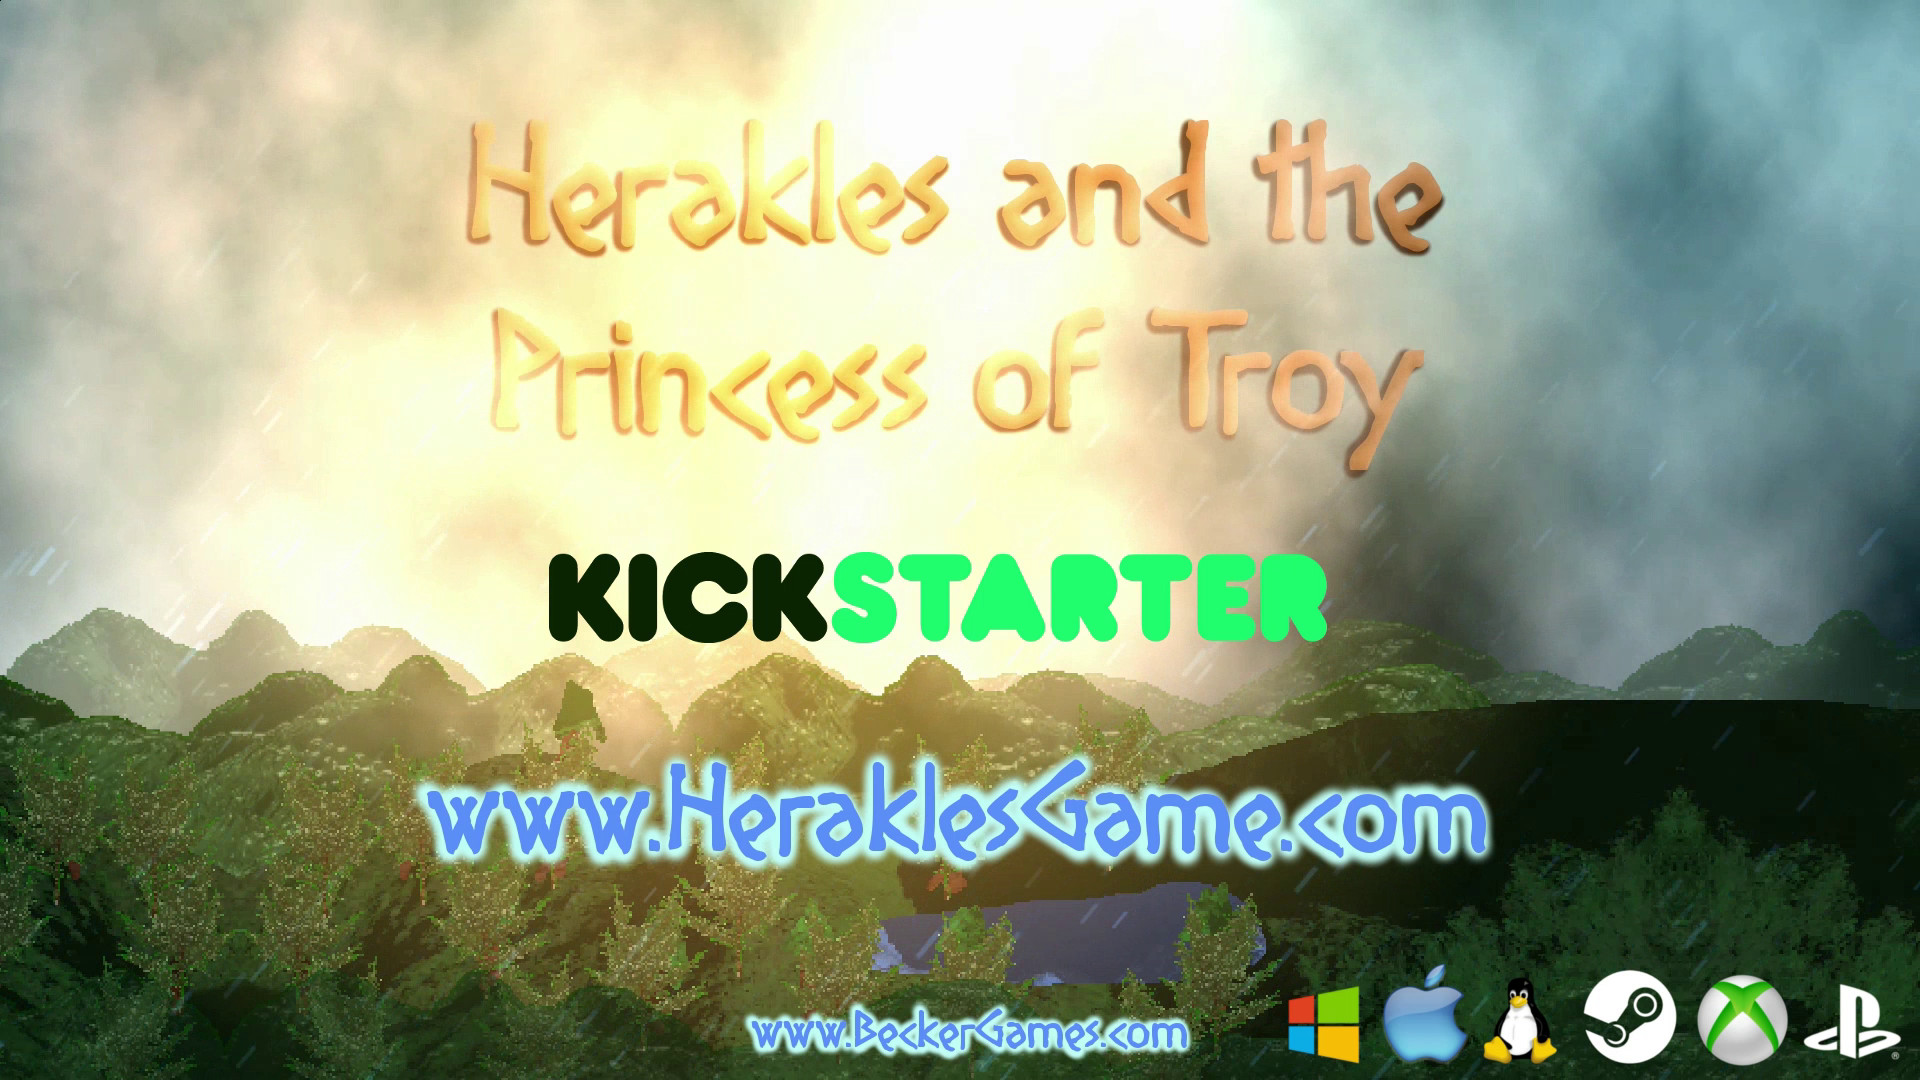 Herakles and The Princess of Troy